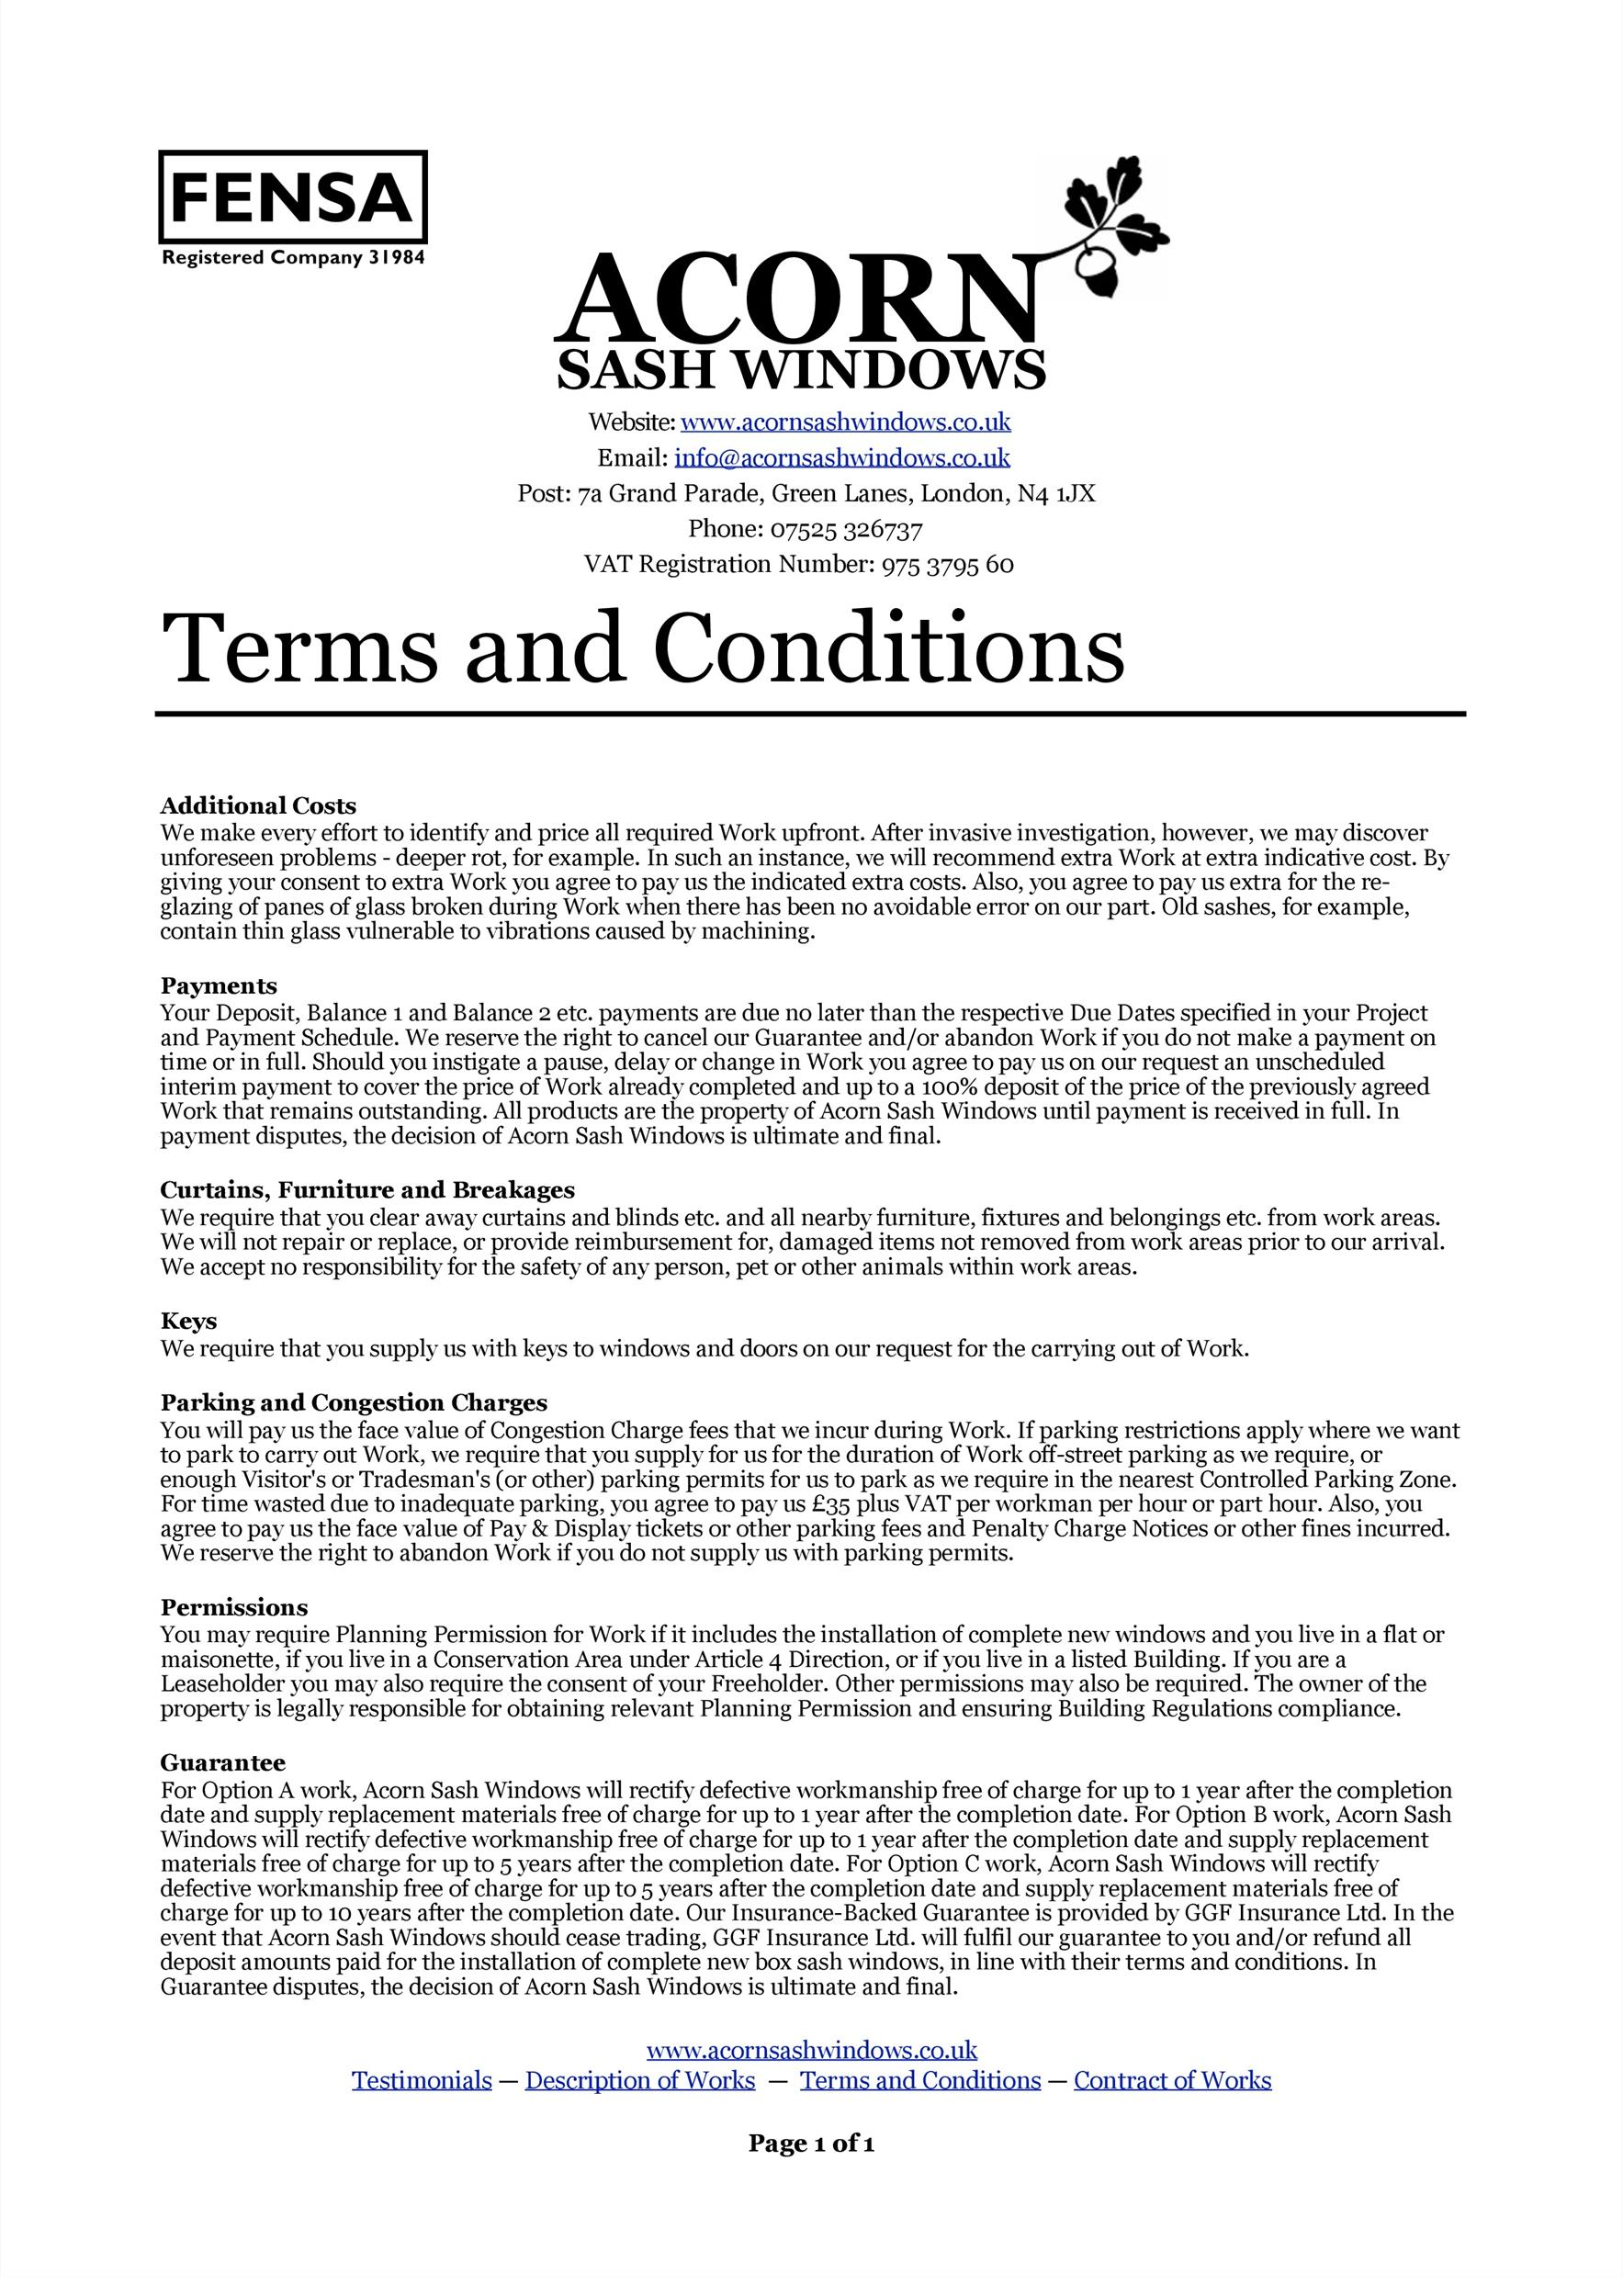 40 free terms and conditions templates for any website for Generic terms and conditions template